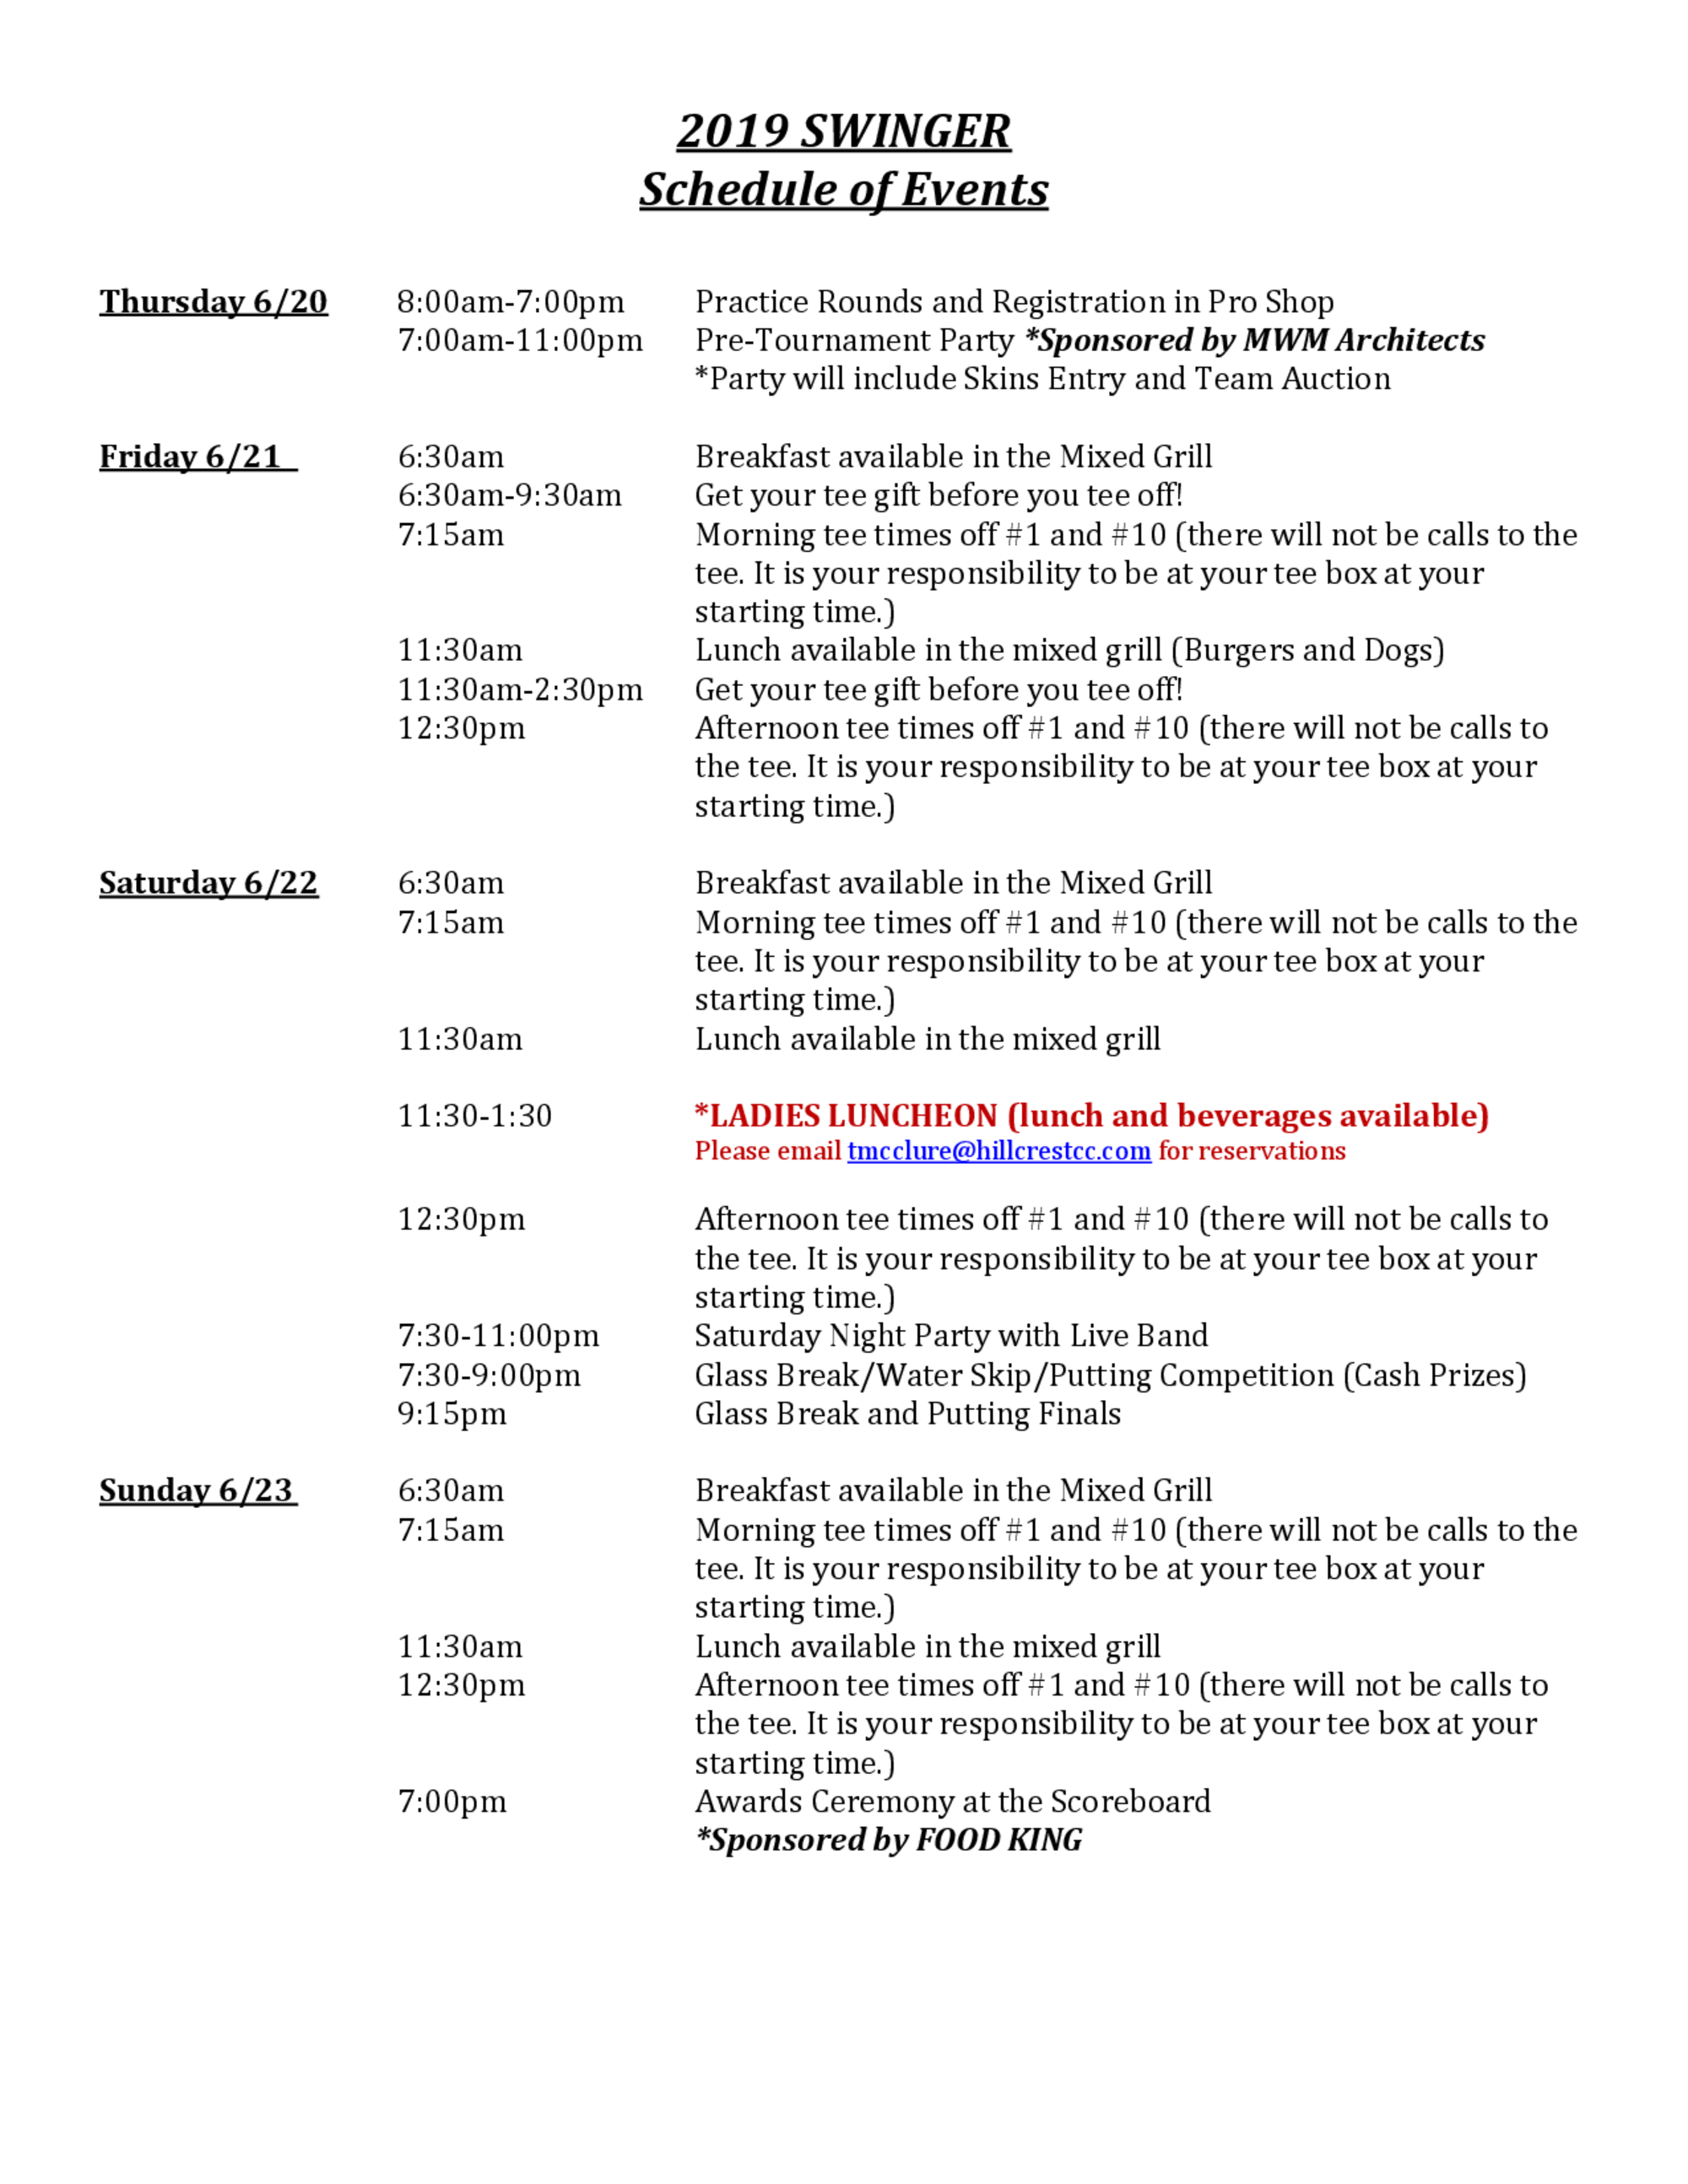 2019 schedule of events 1